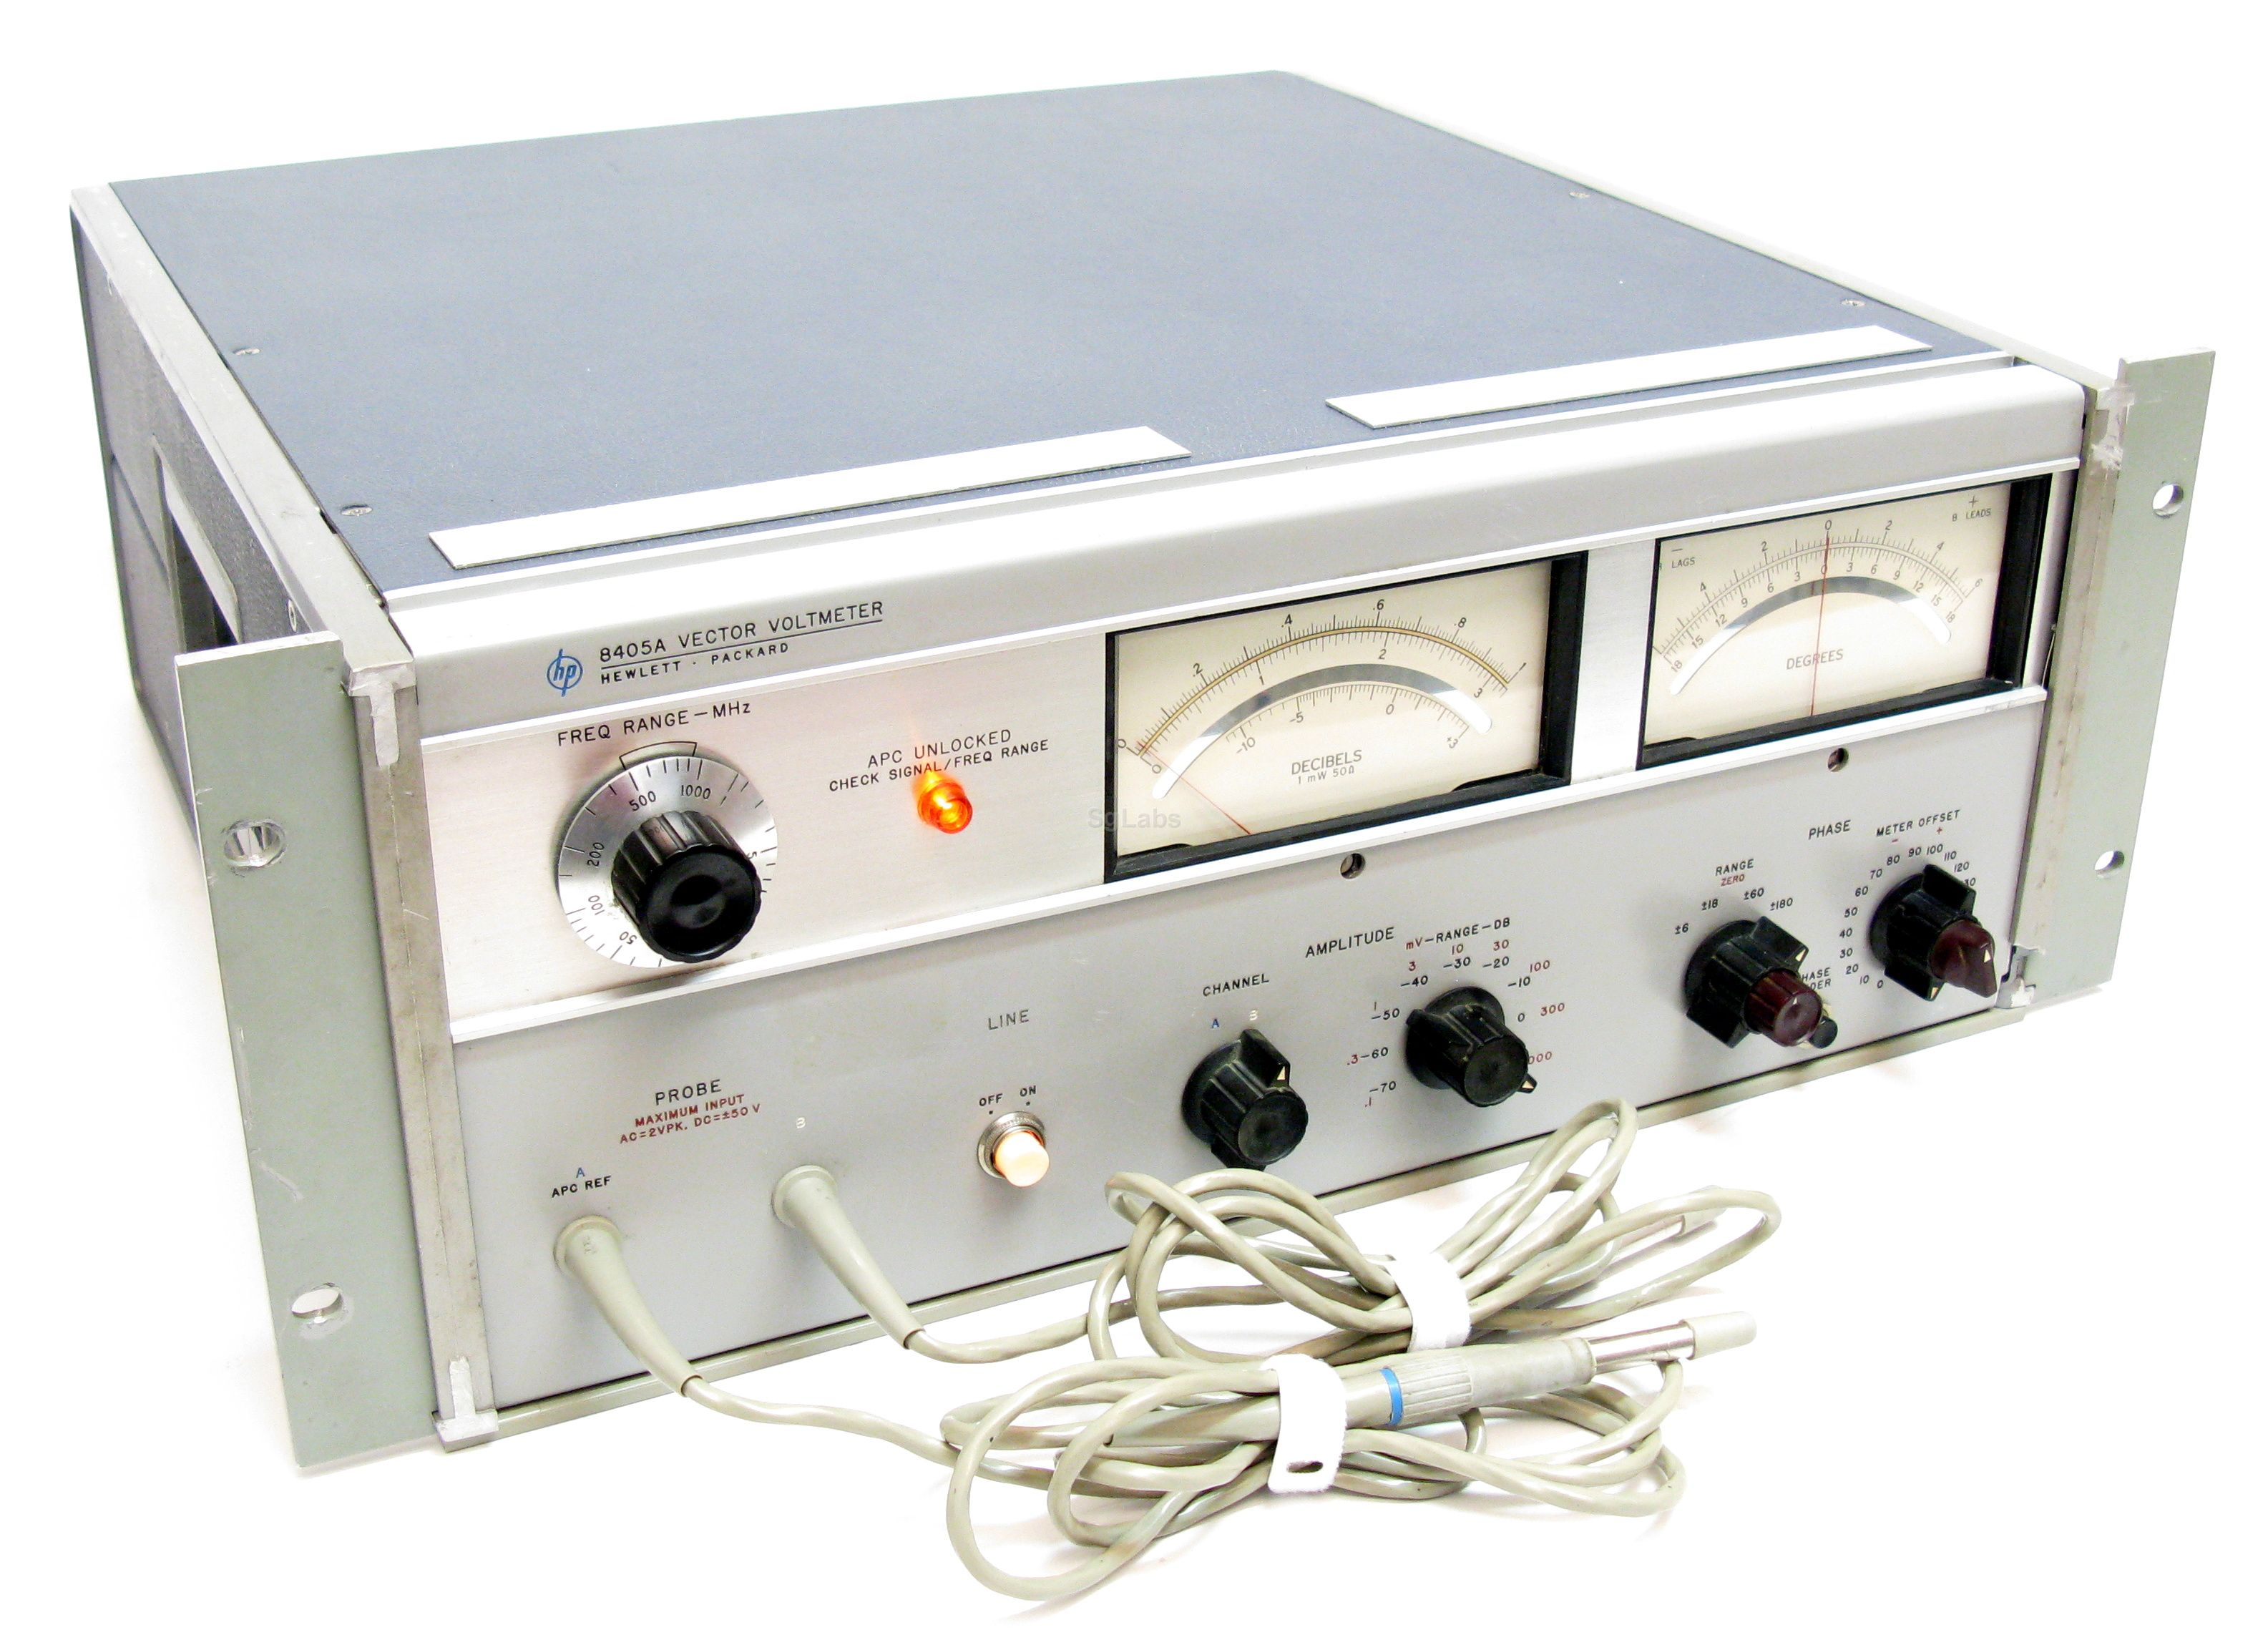 Keysight (formerly Agilent T & M) 8405A Vector Voltmeter Rental